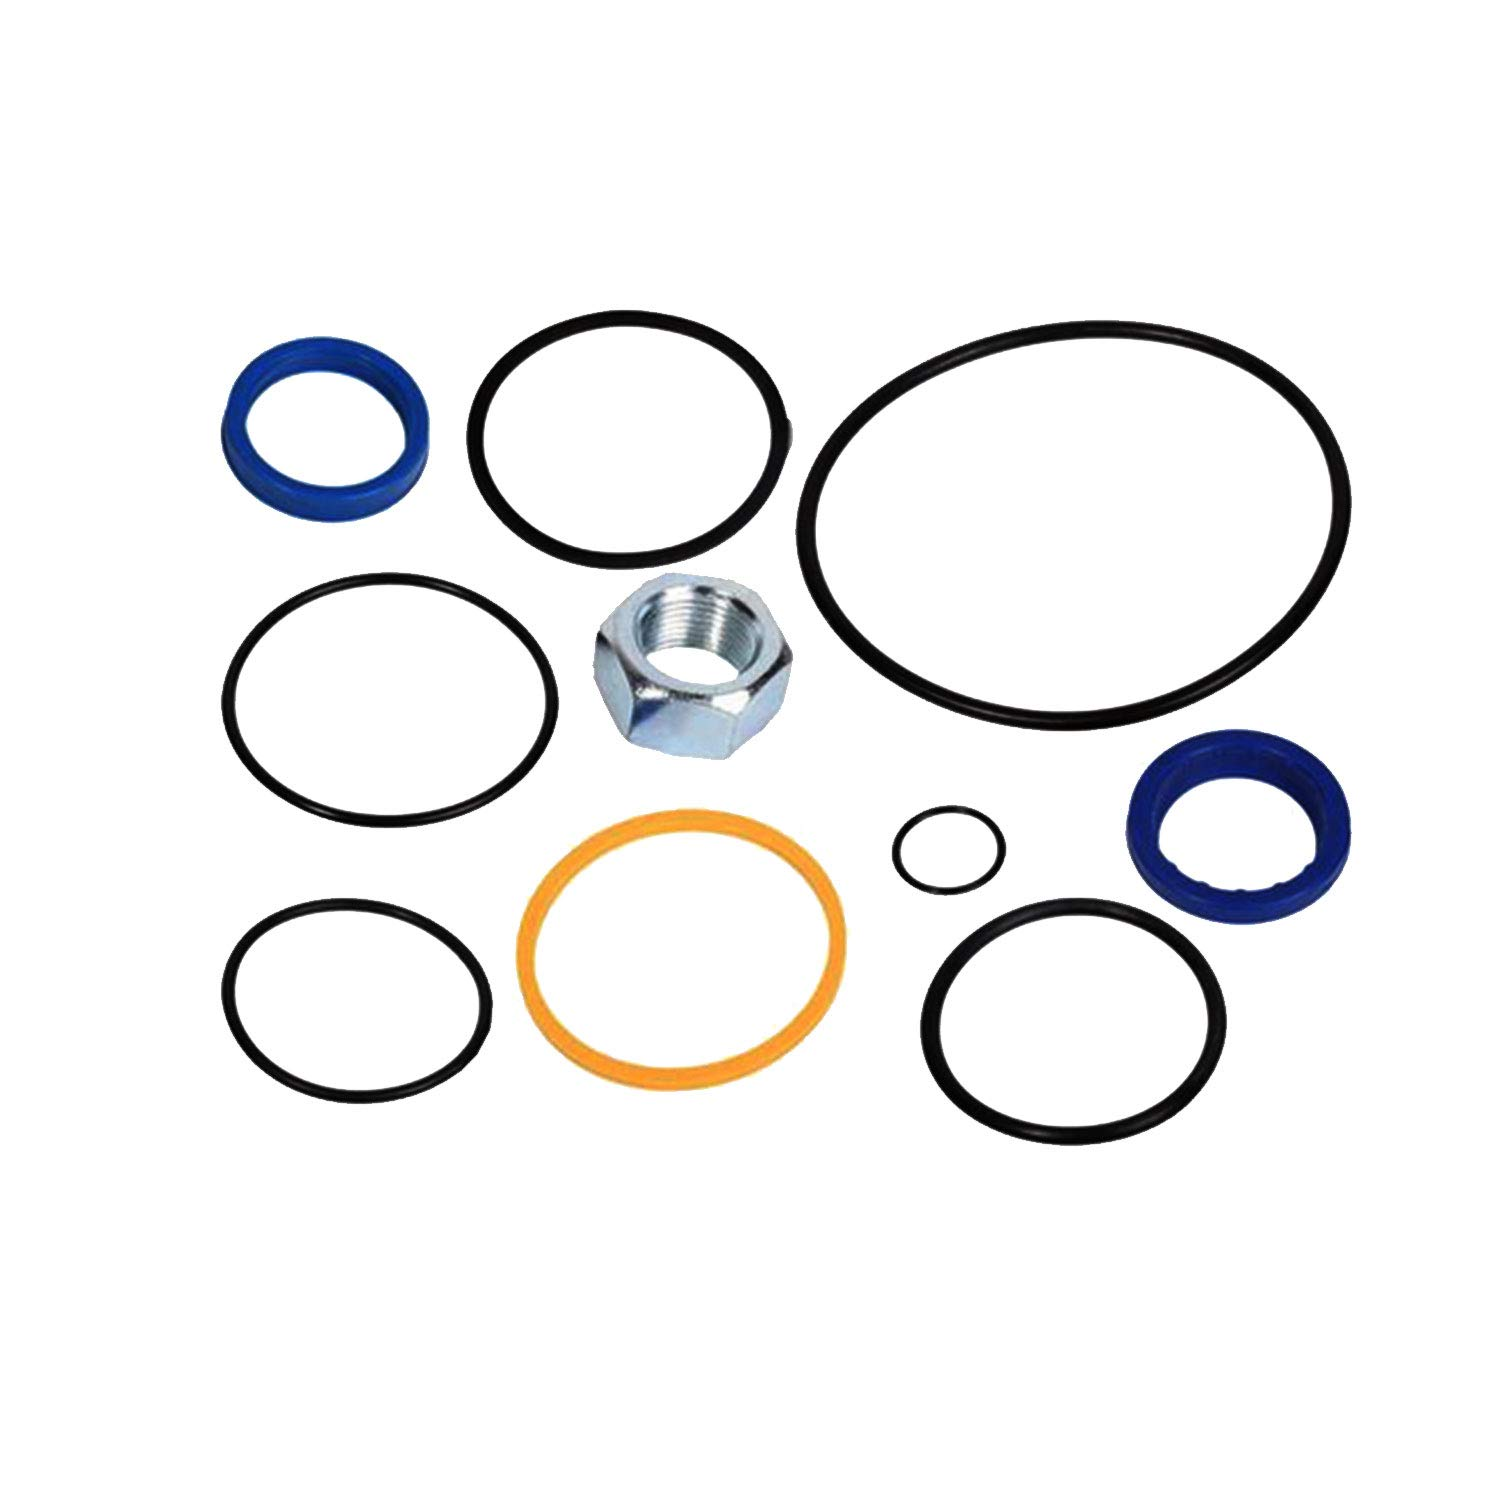 Notonmek Hydraulic Cylinder Seal Kit 6587790 for Bobcat 310 313 371 700 720 721 722 Skid Steer